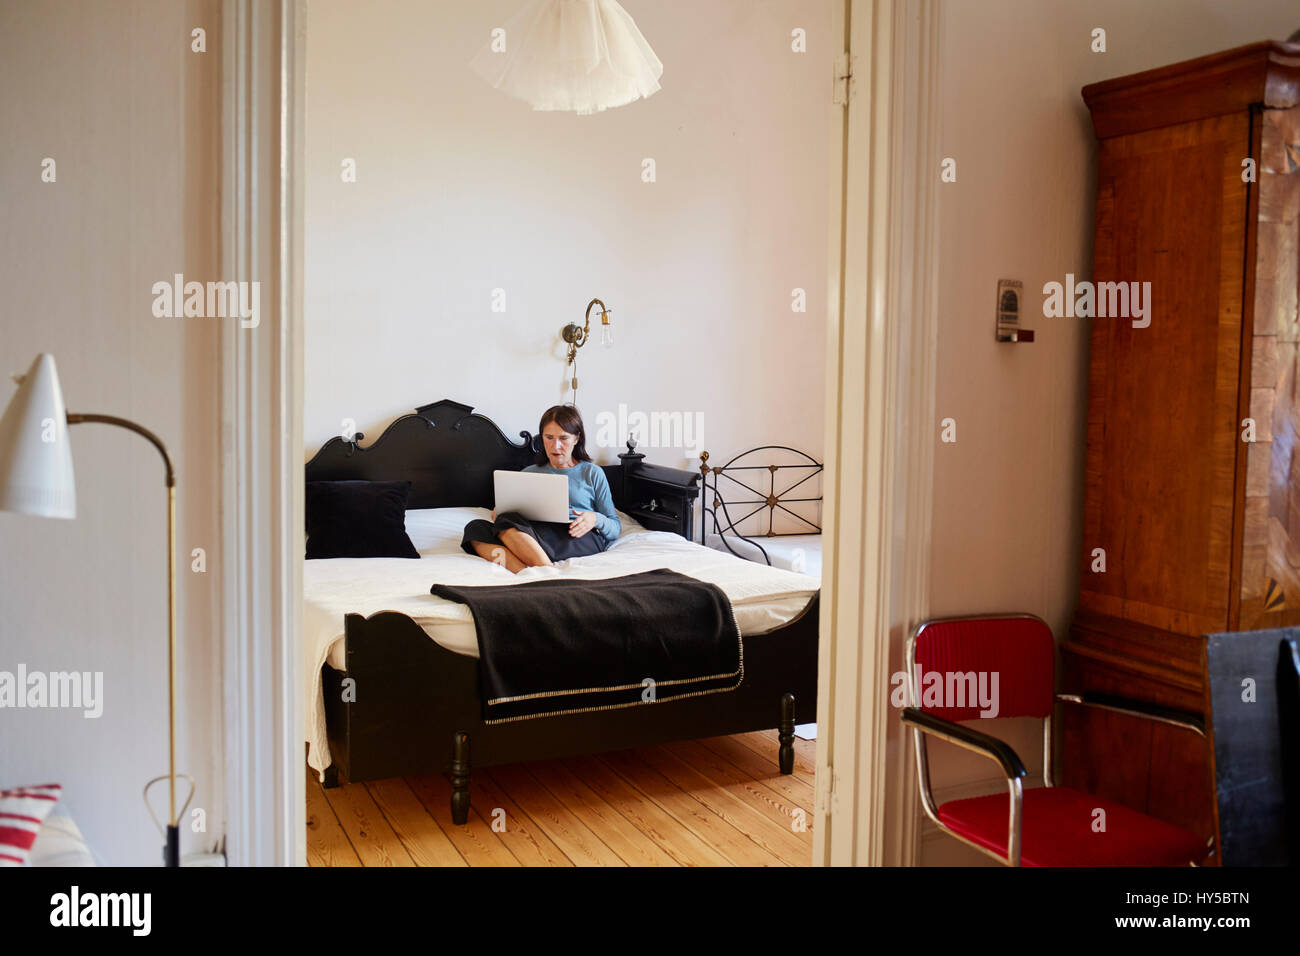 Sweden, Woman using laptop while sitting on bed - Stock Image